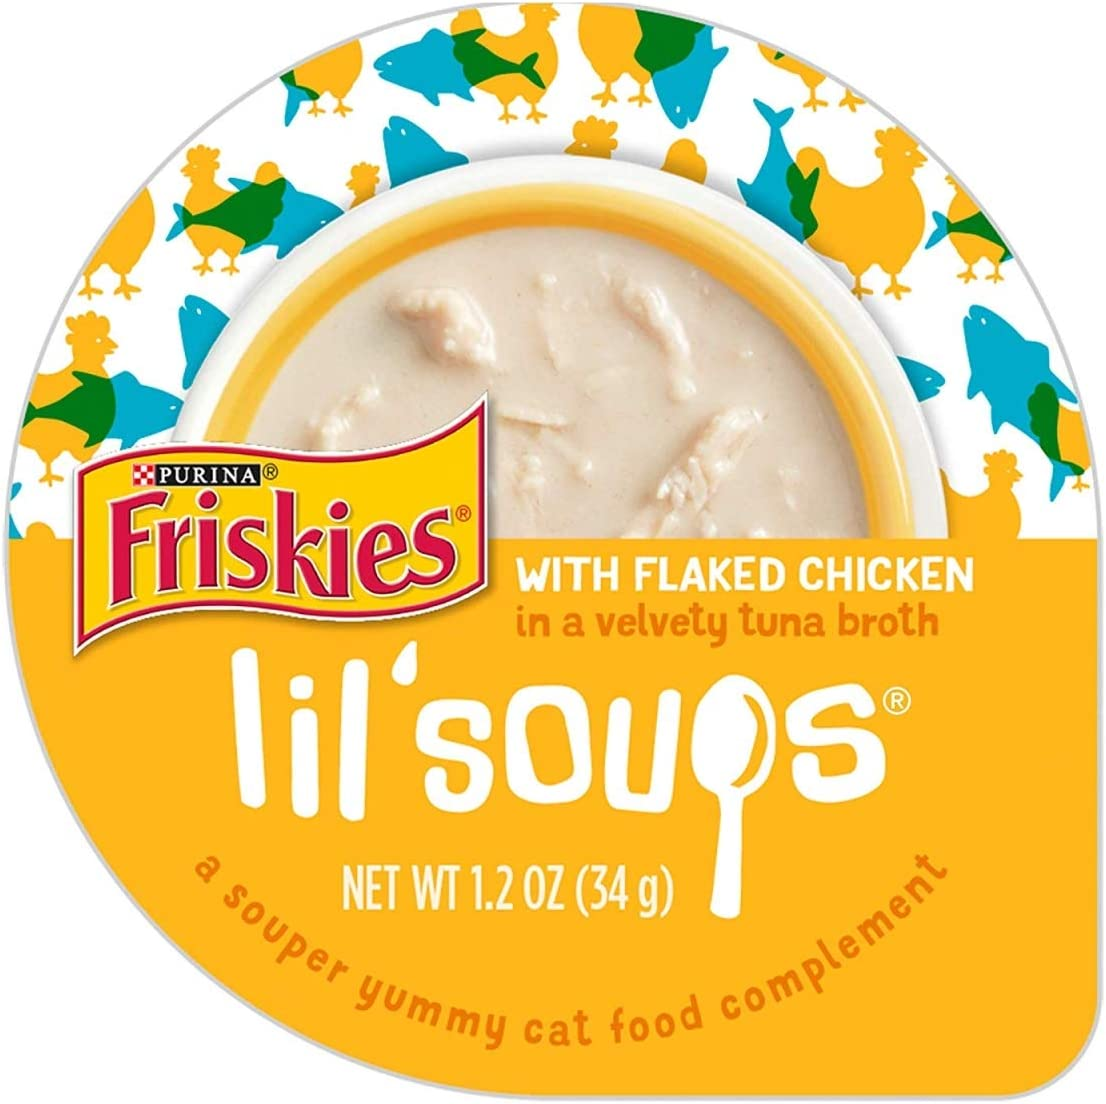 Purina 050568 1.2 oz Friskies Lil Soups with Flaked Chicken in a Velvety Tuna Broth44; Case of 8